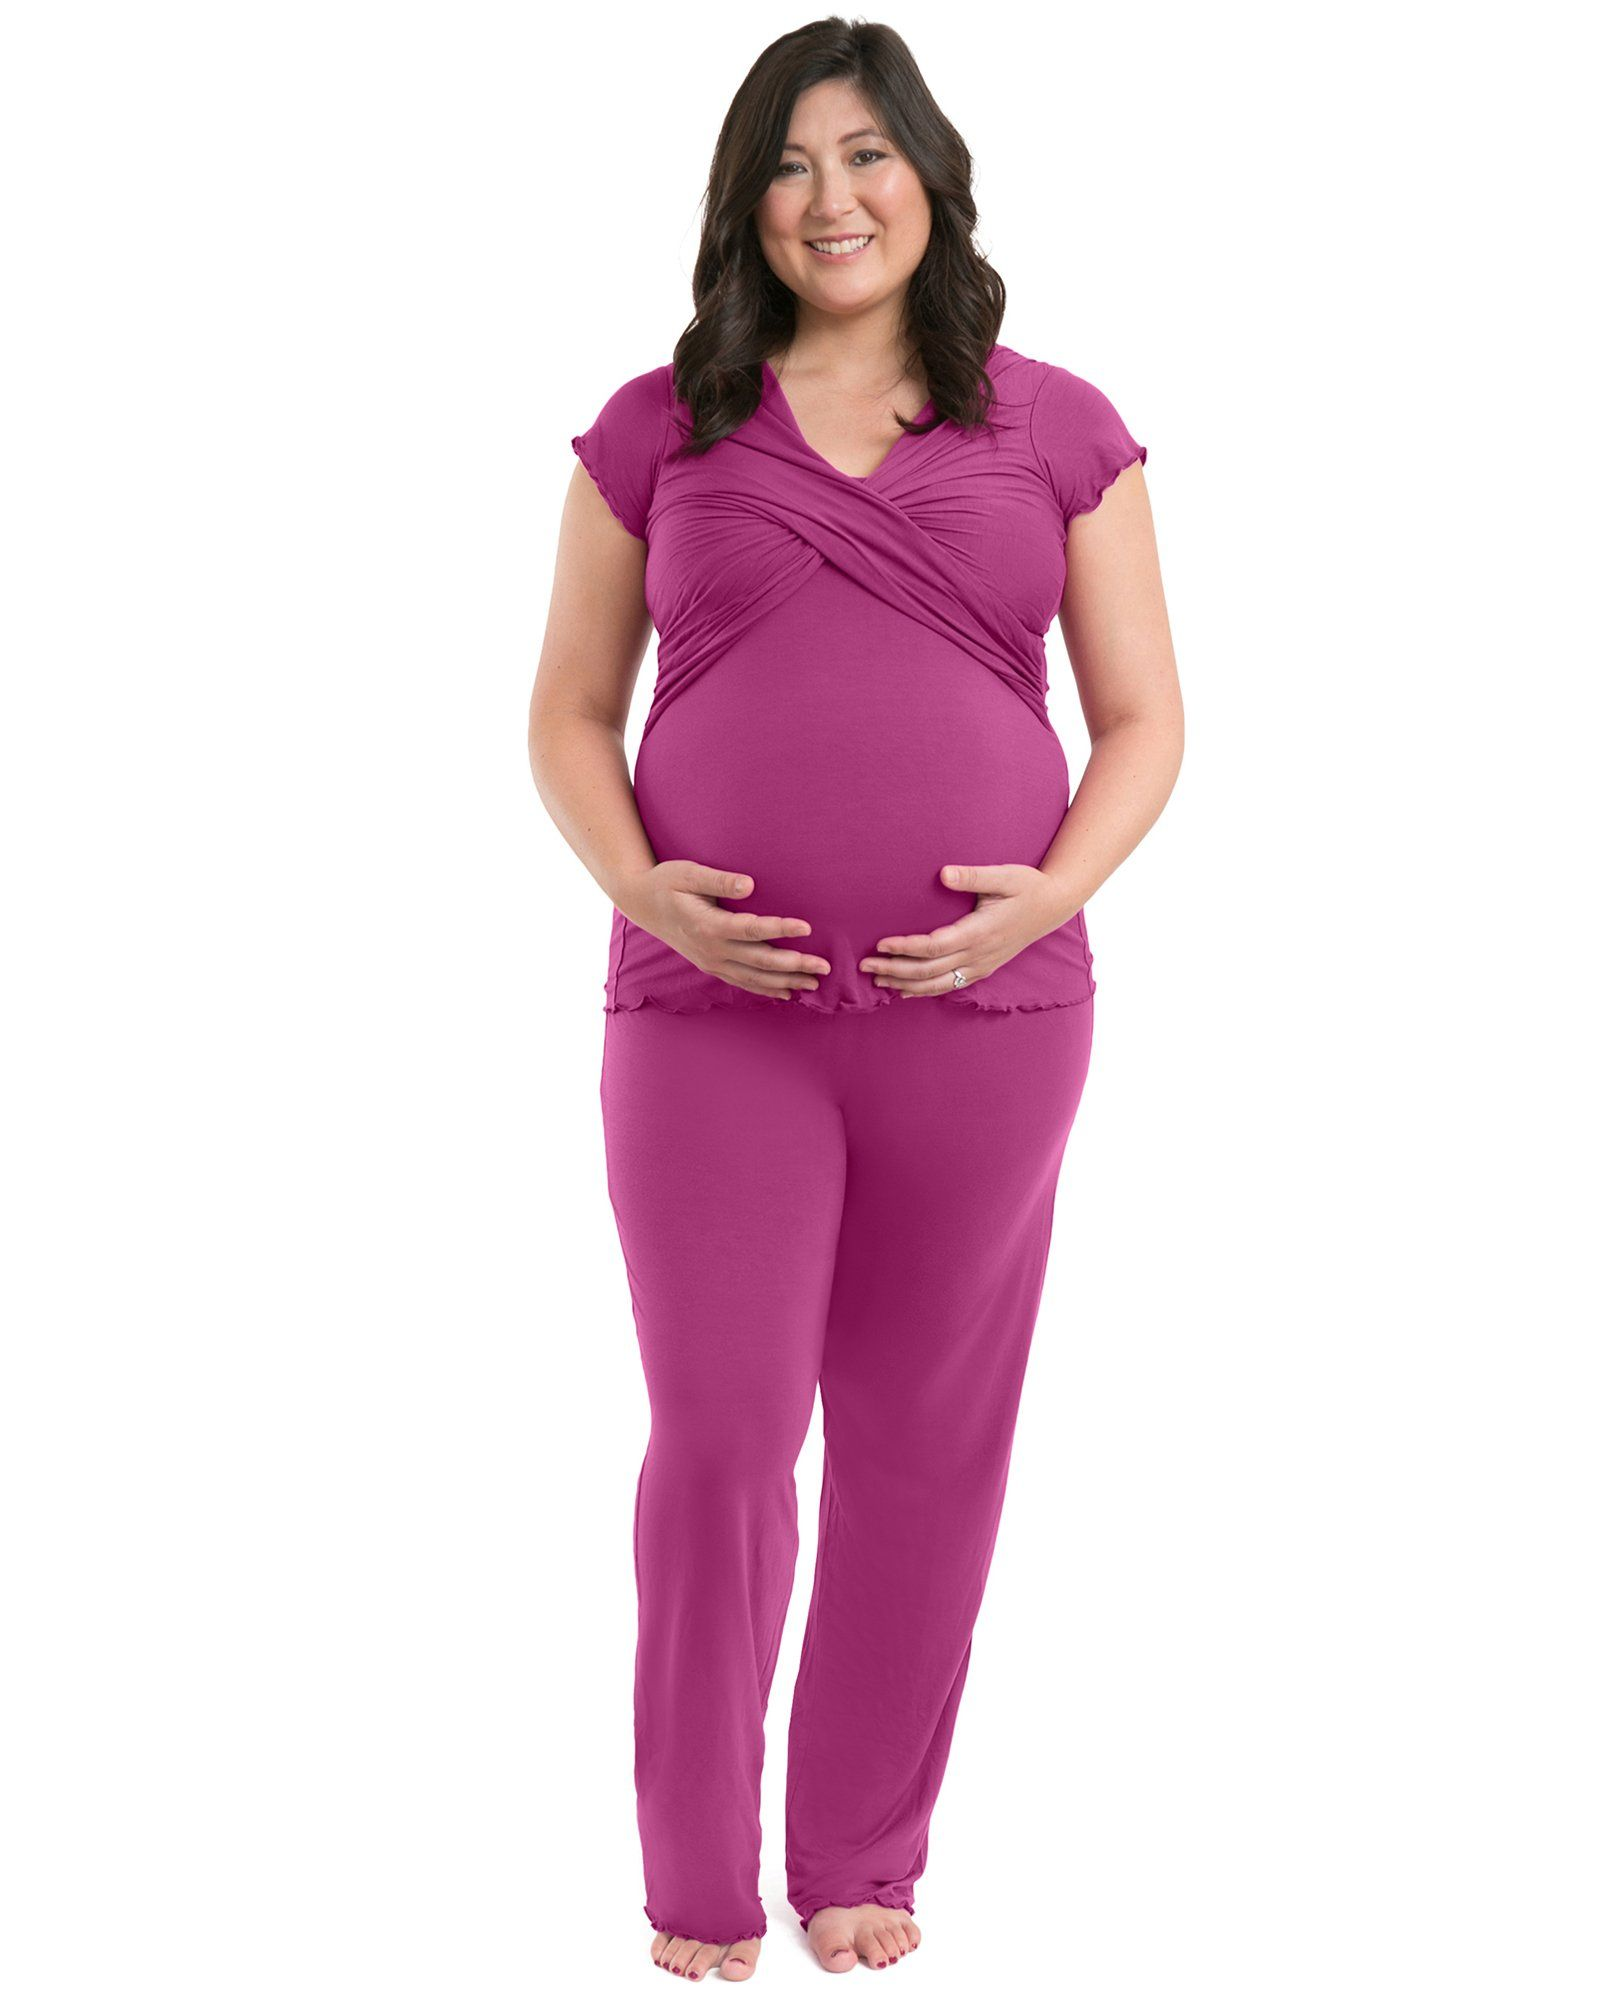 ece05b44cf1 hospital bag - Kindred Bravely Davy Ultra Soft Maternity and Nursing  Pajamas Sleepwear Set Berry XXL -- You could obtain added information at  the picture ...